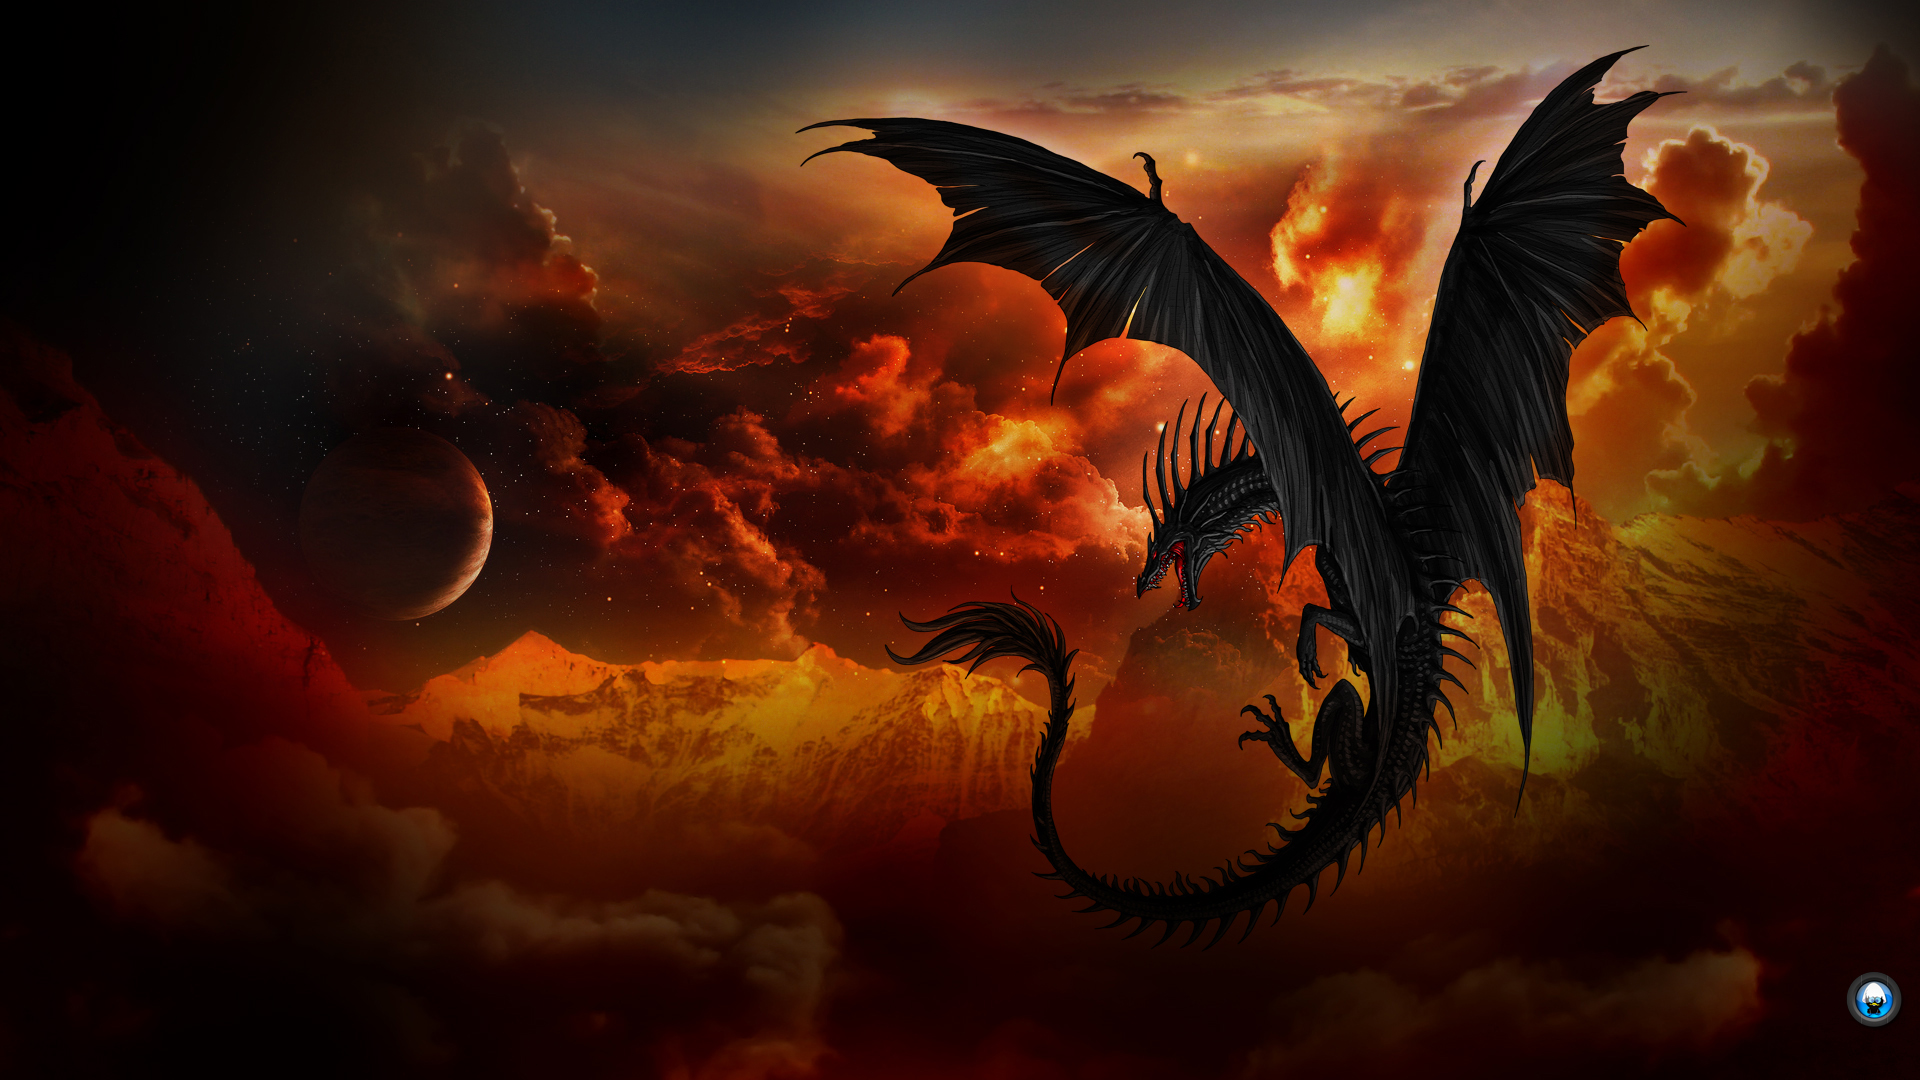 Dragon Wallpaper Themes HD